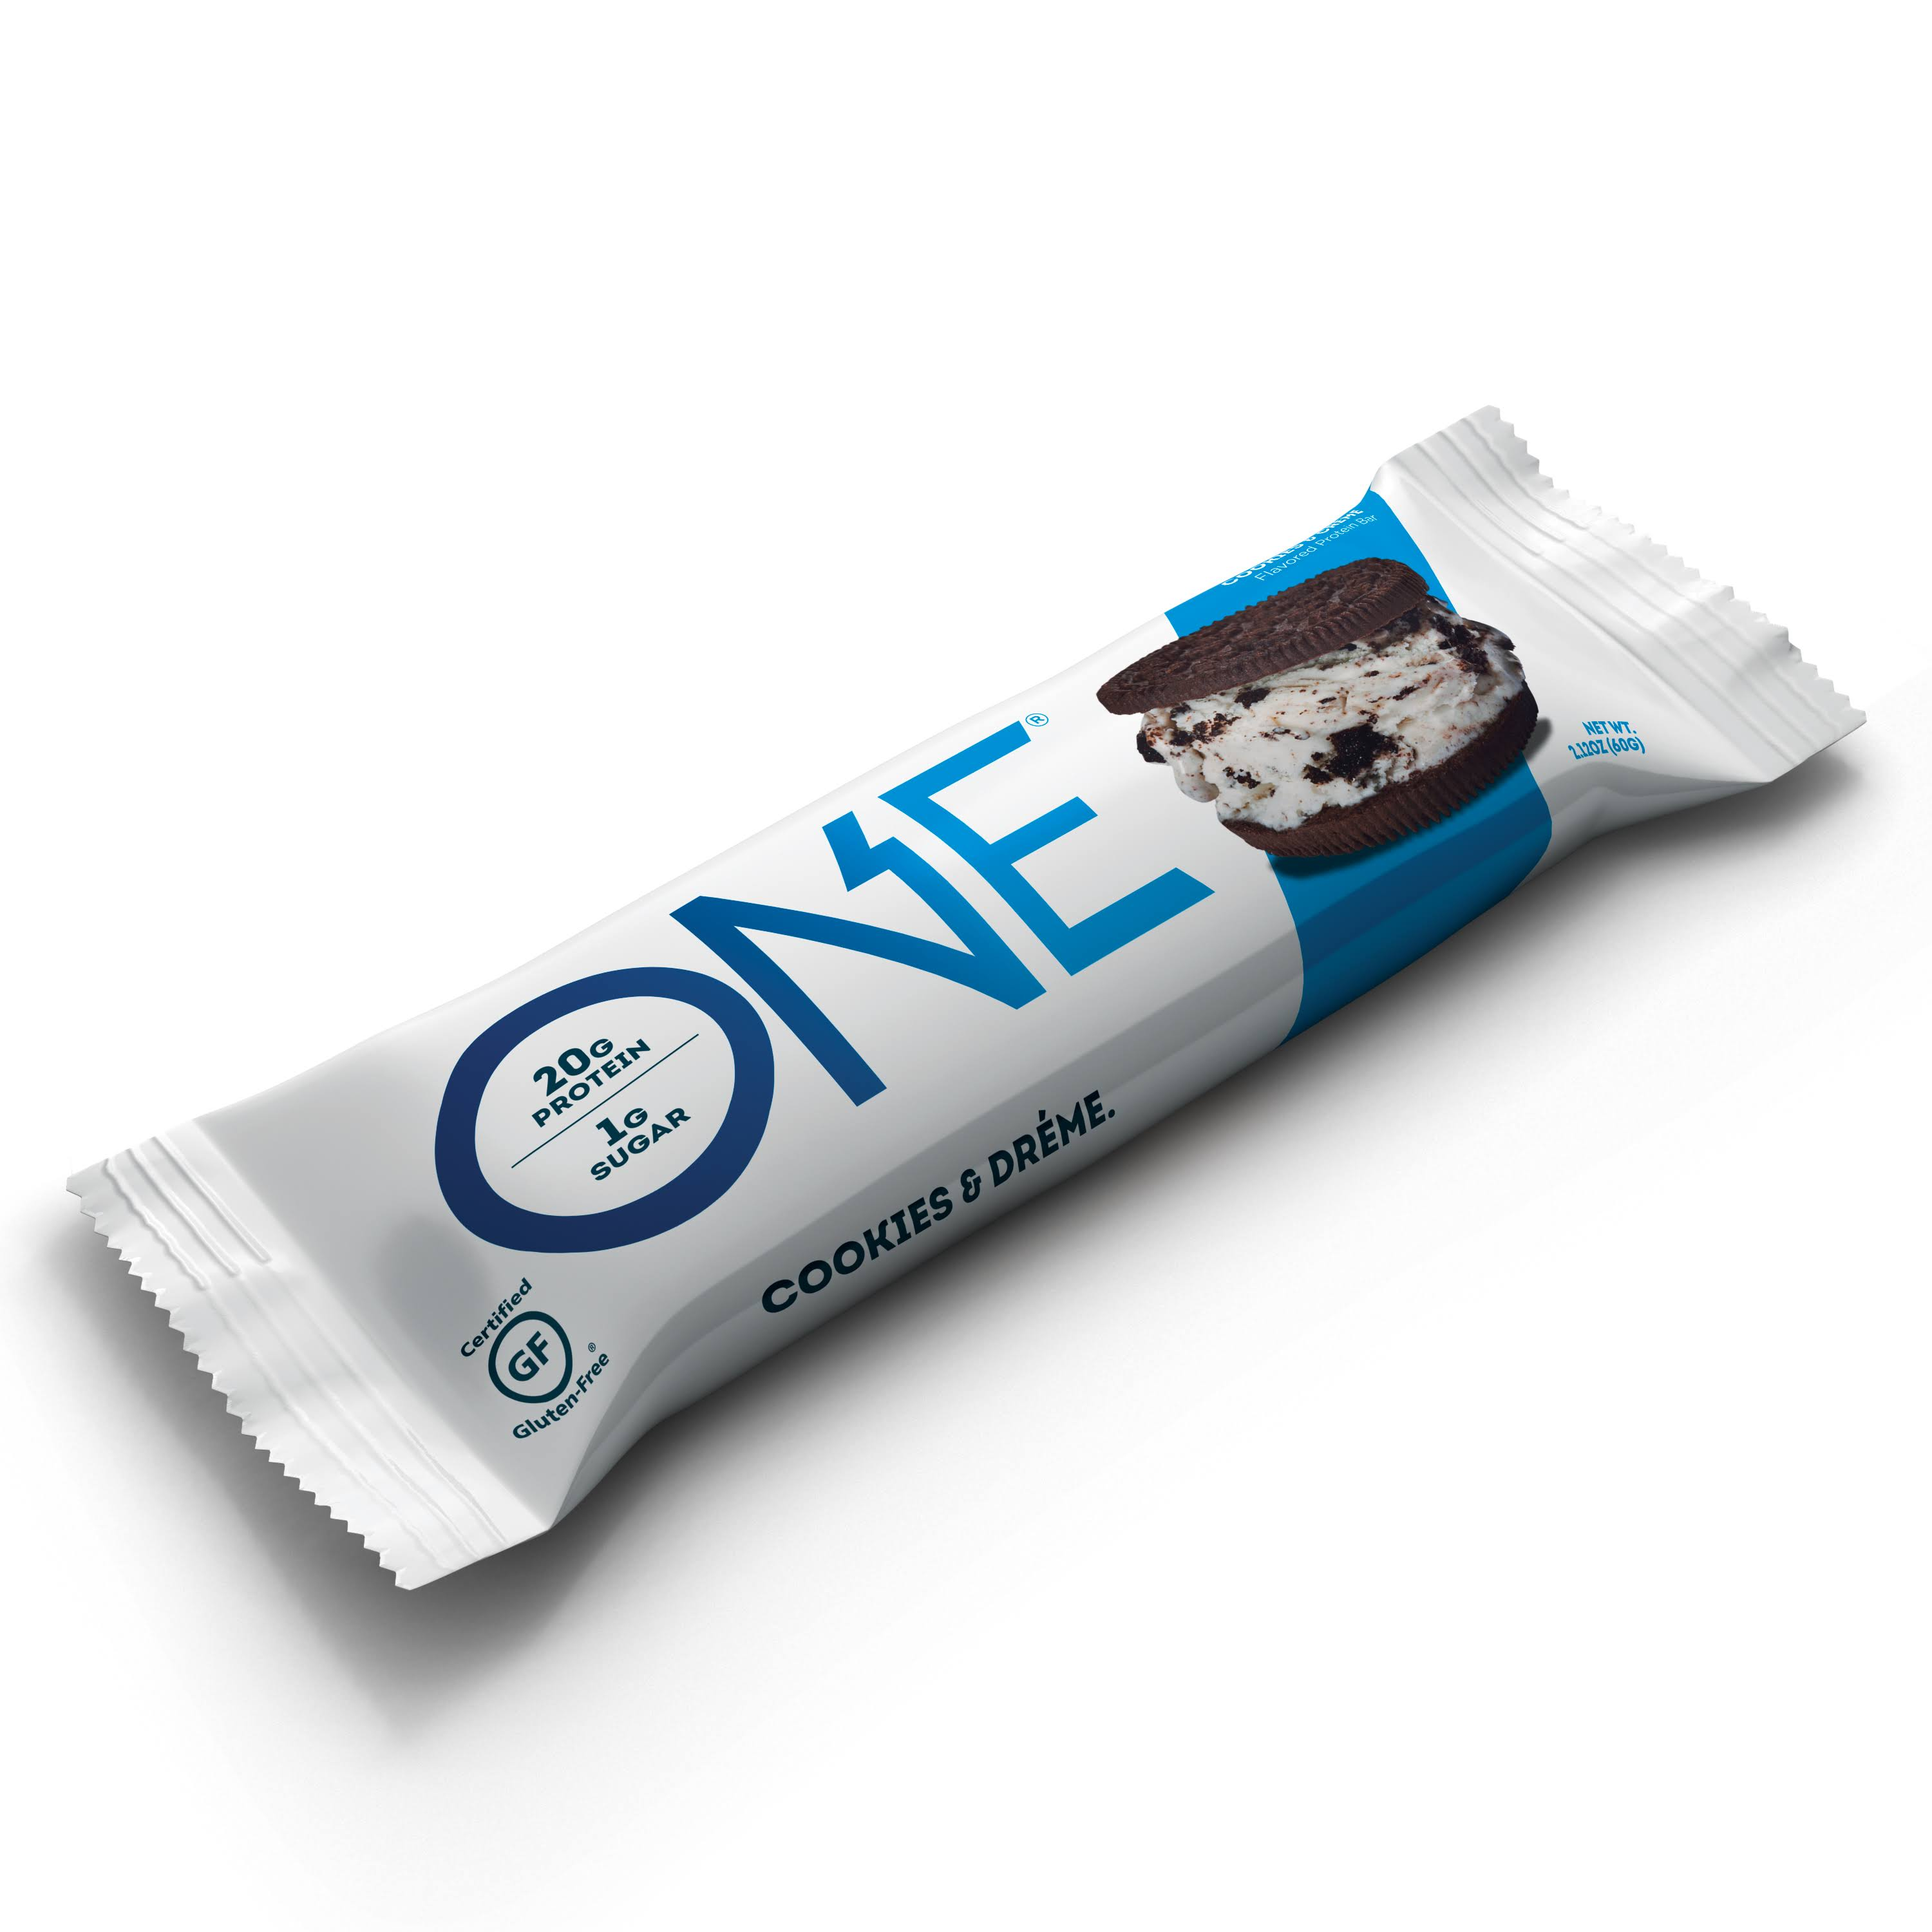 One Protein Bar, Cookies & Creme - 12 pack, 2.12 oz bars